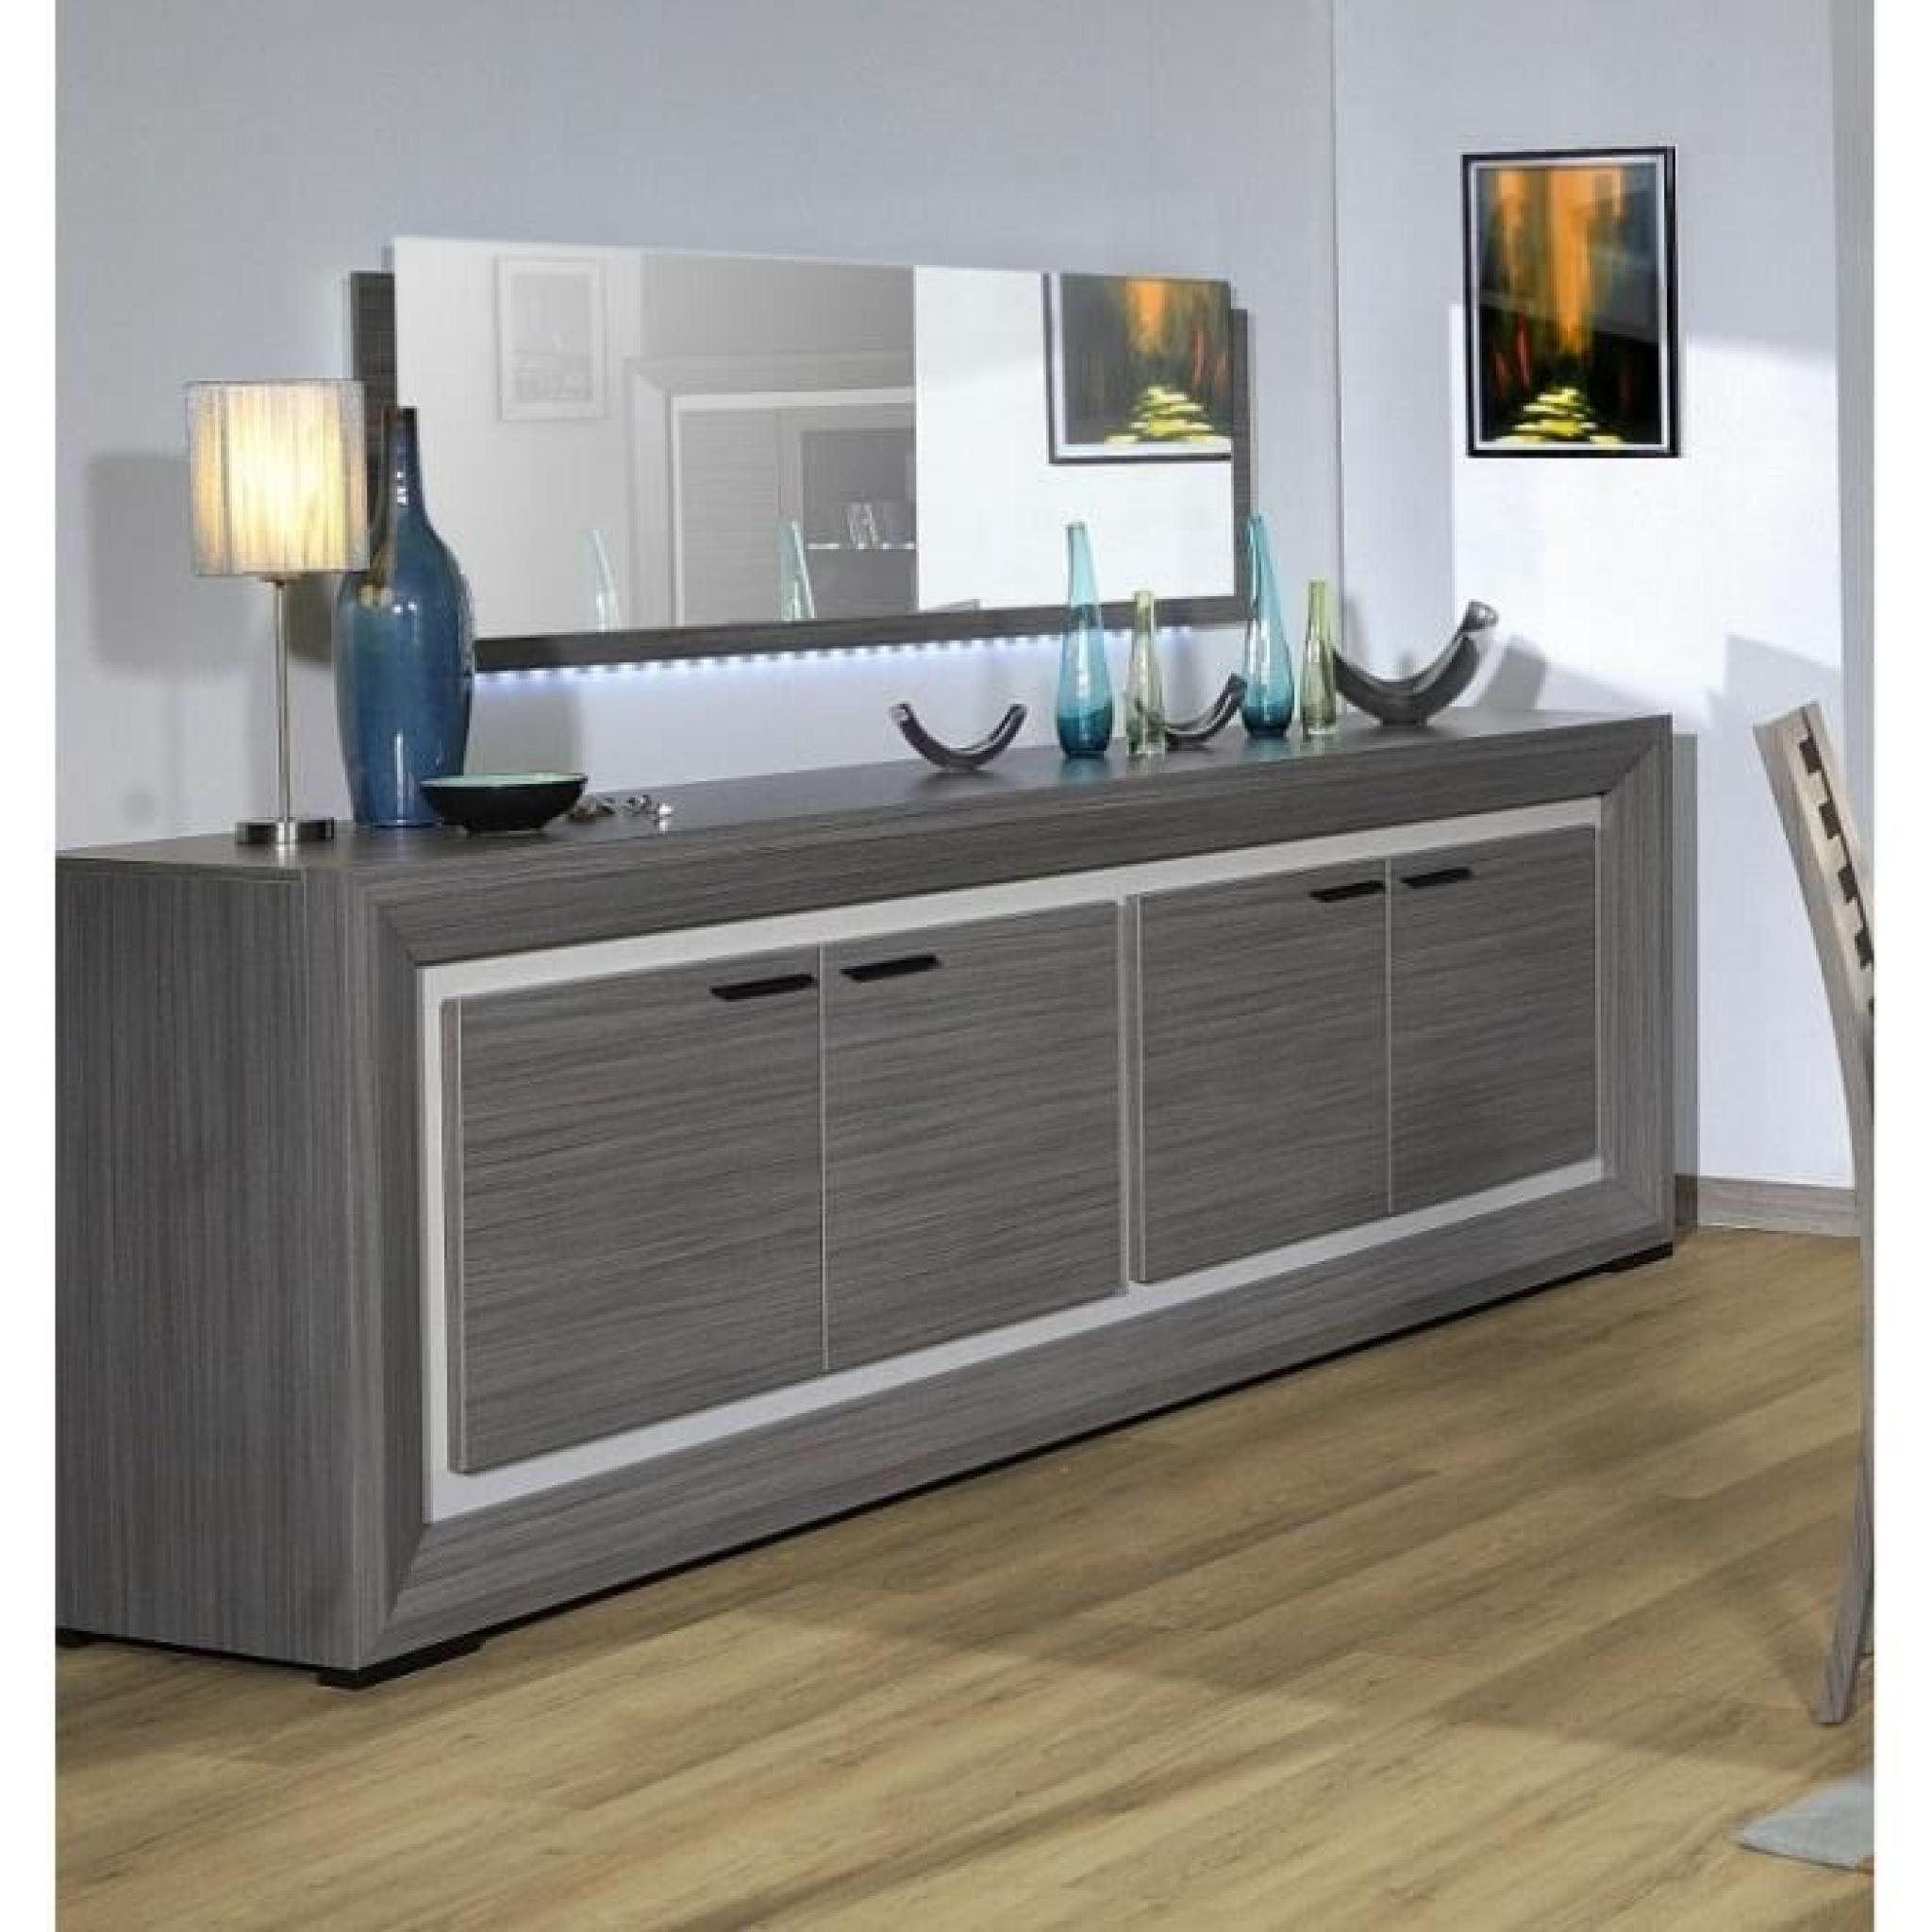 lynea bahut bois gris et laque l248 cm achat vente. Black Bedroom Furniture Sets. Home Design Ideas